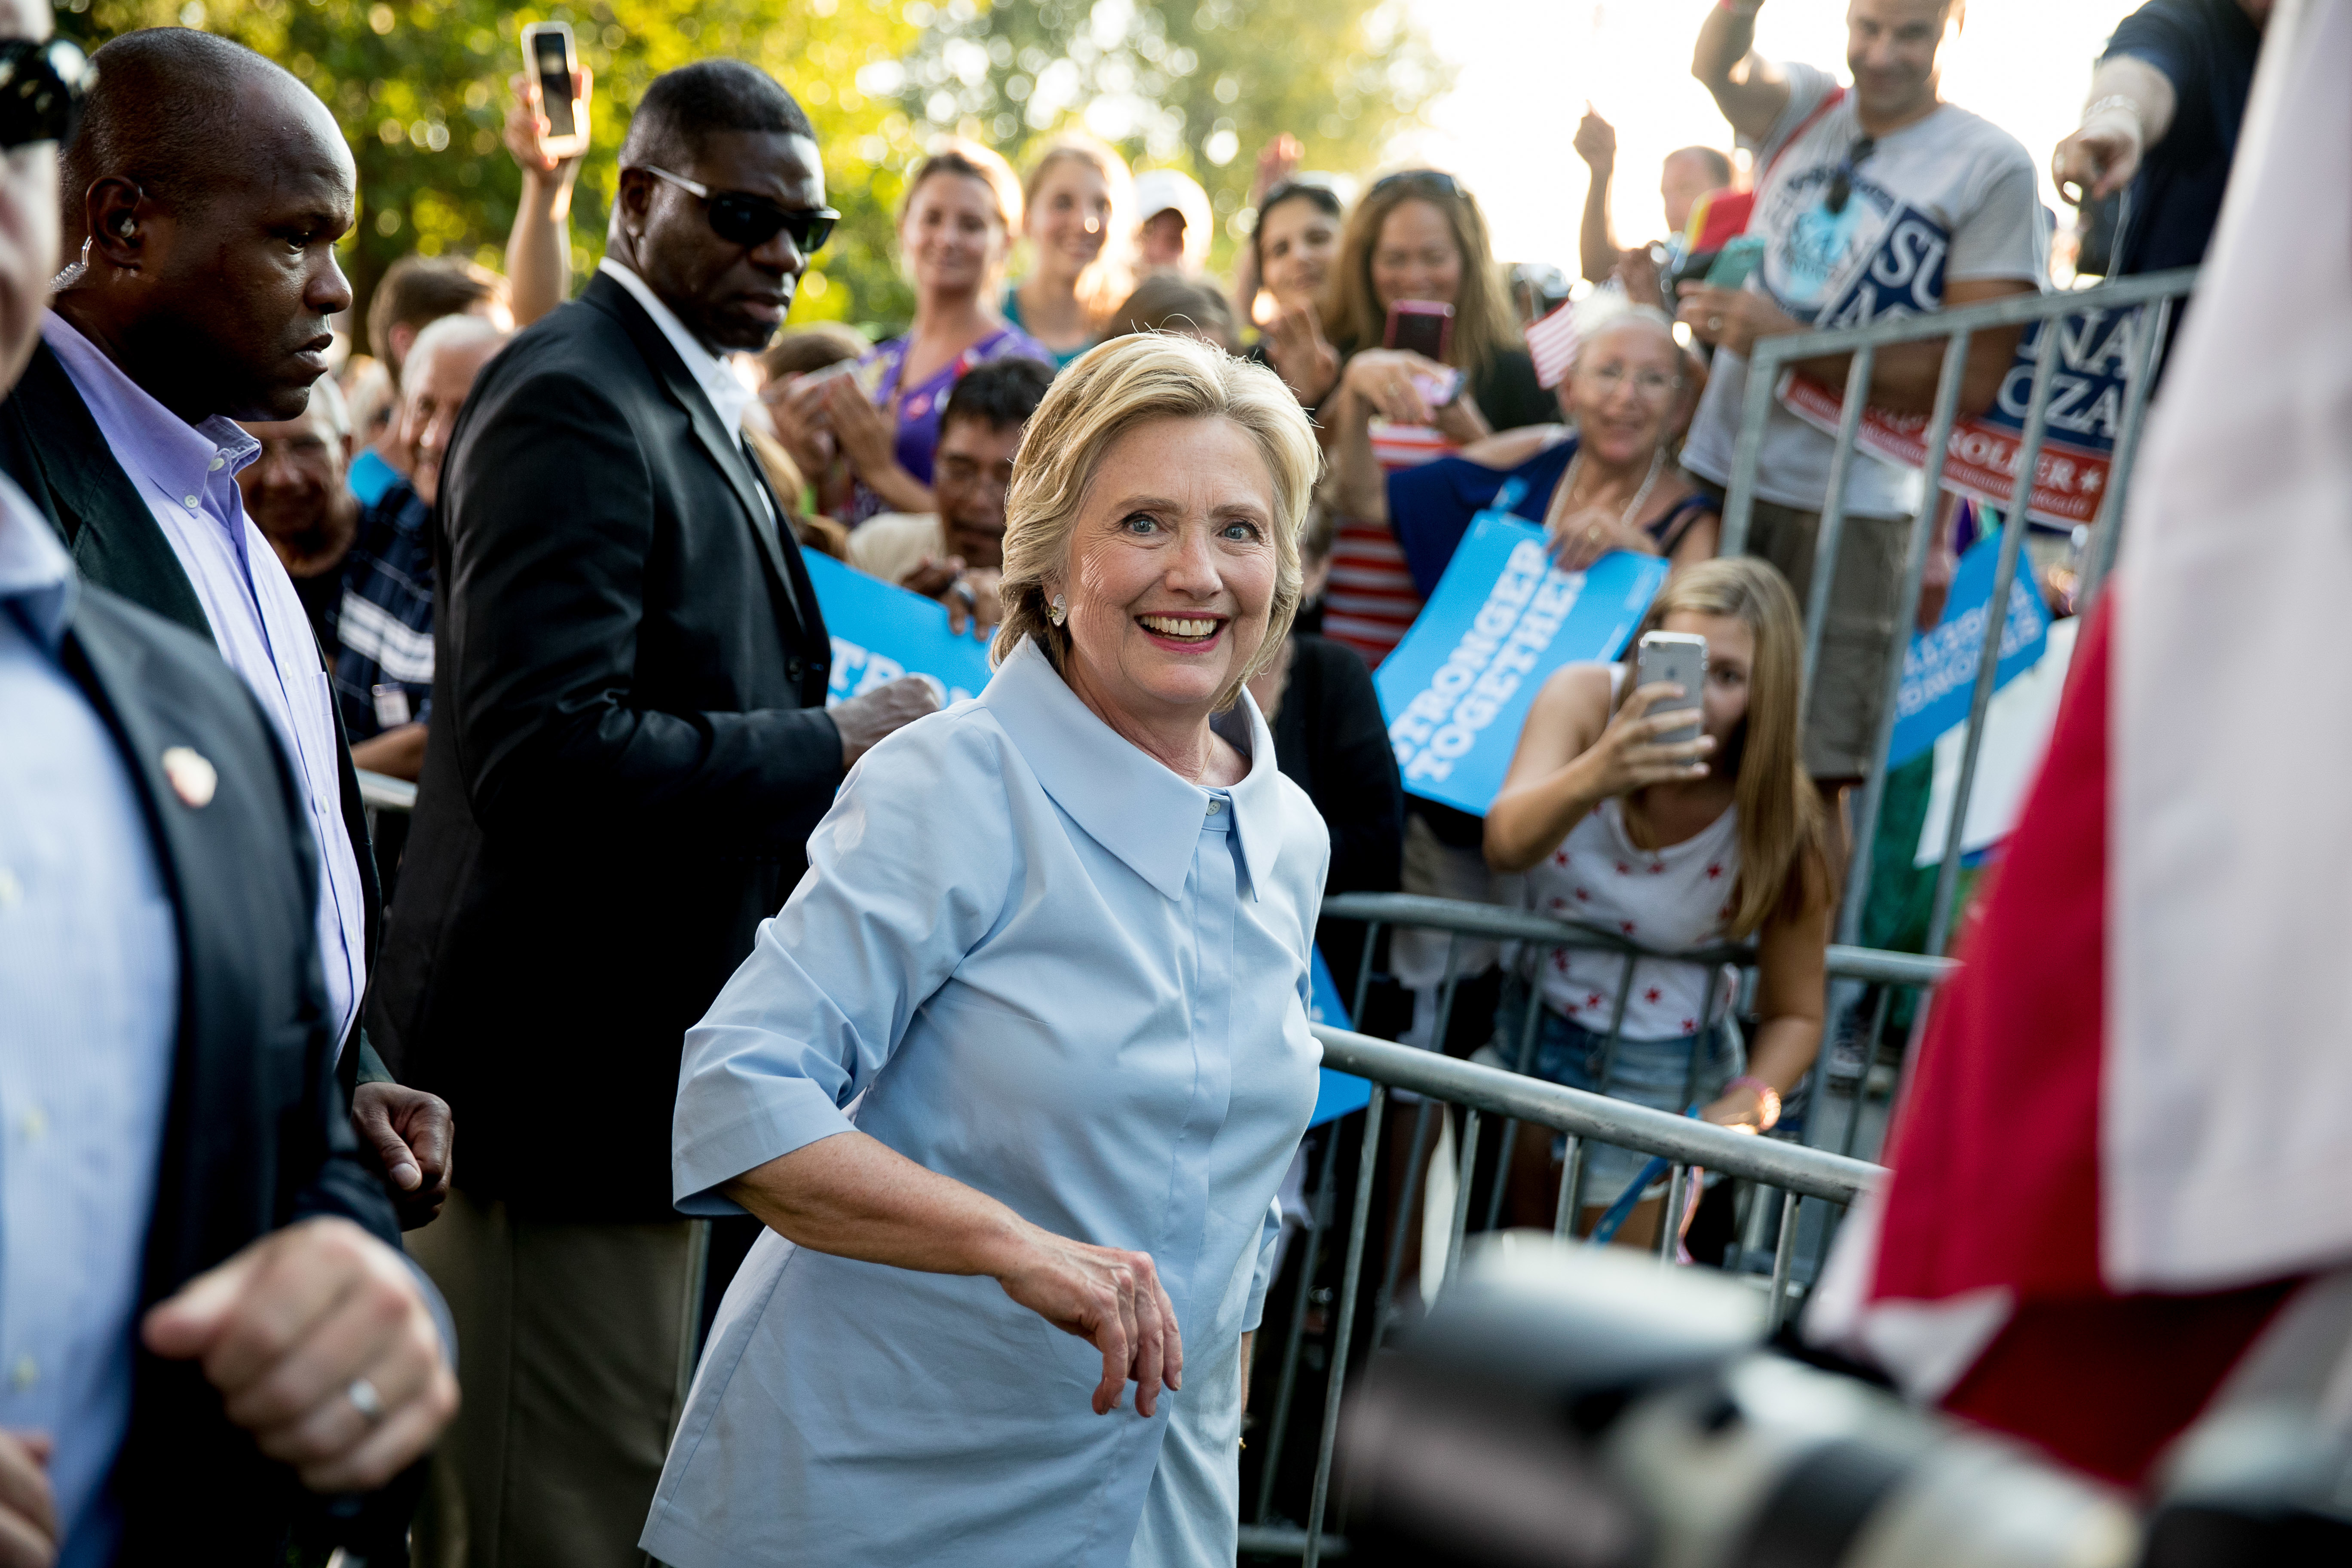 Hillary Clinton departs after speaking at Illiniwek Park Riverfront in Hampton, IL, on Sept. 5, 2016.